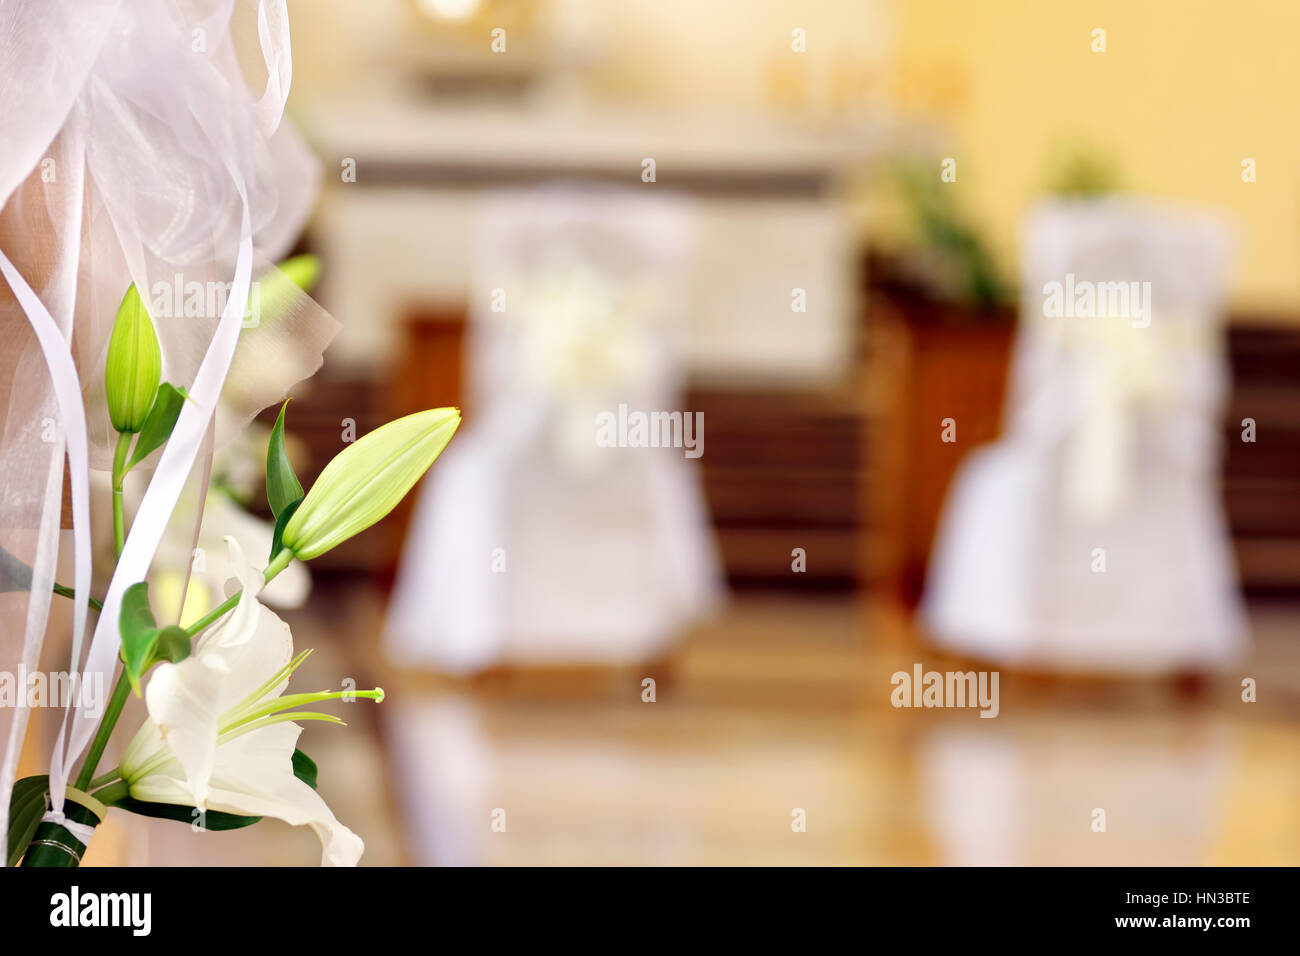 Church decoration before wedding ceremony with space for text - Stock Image